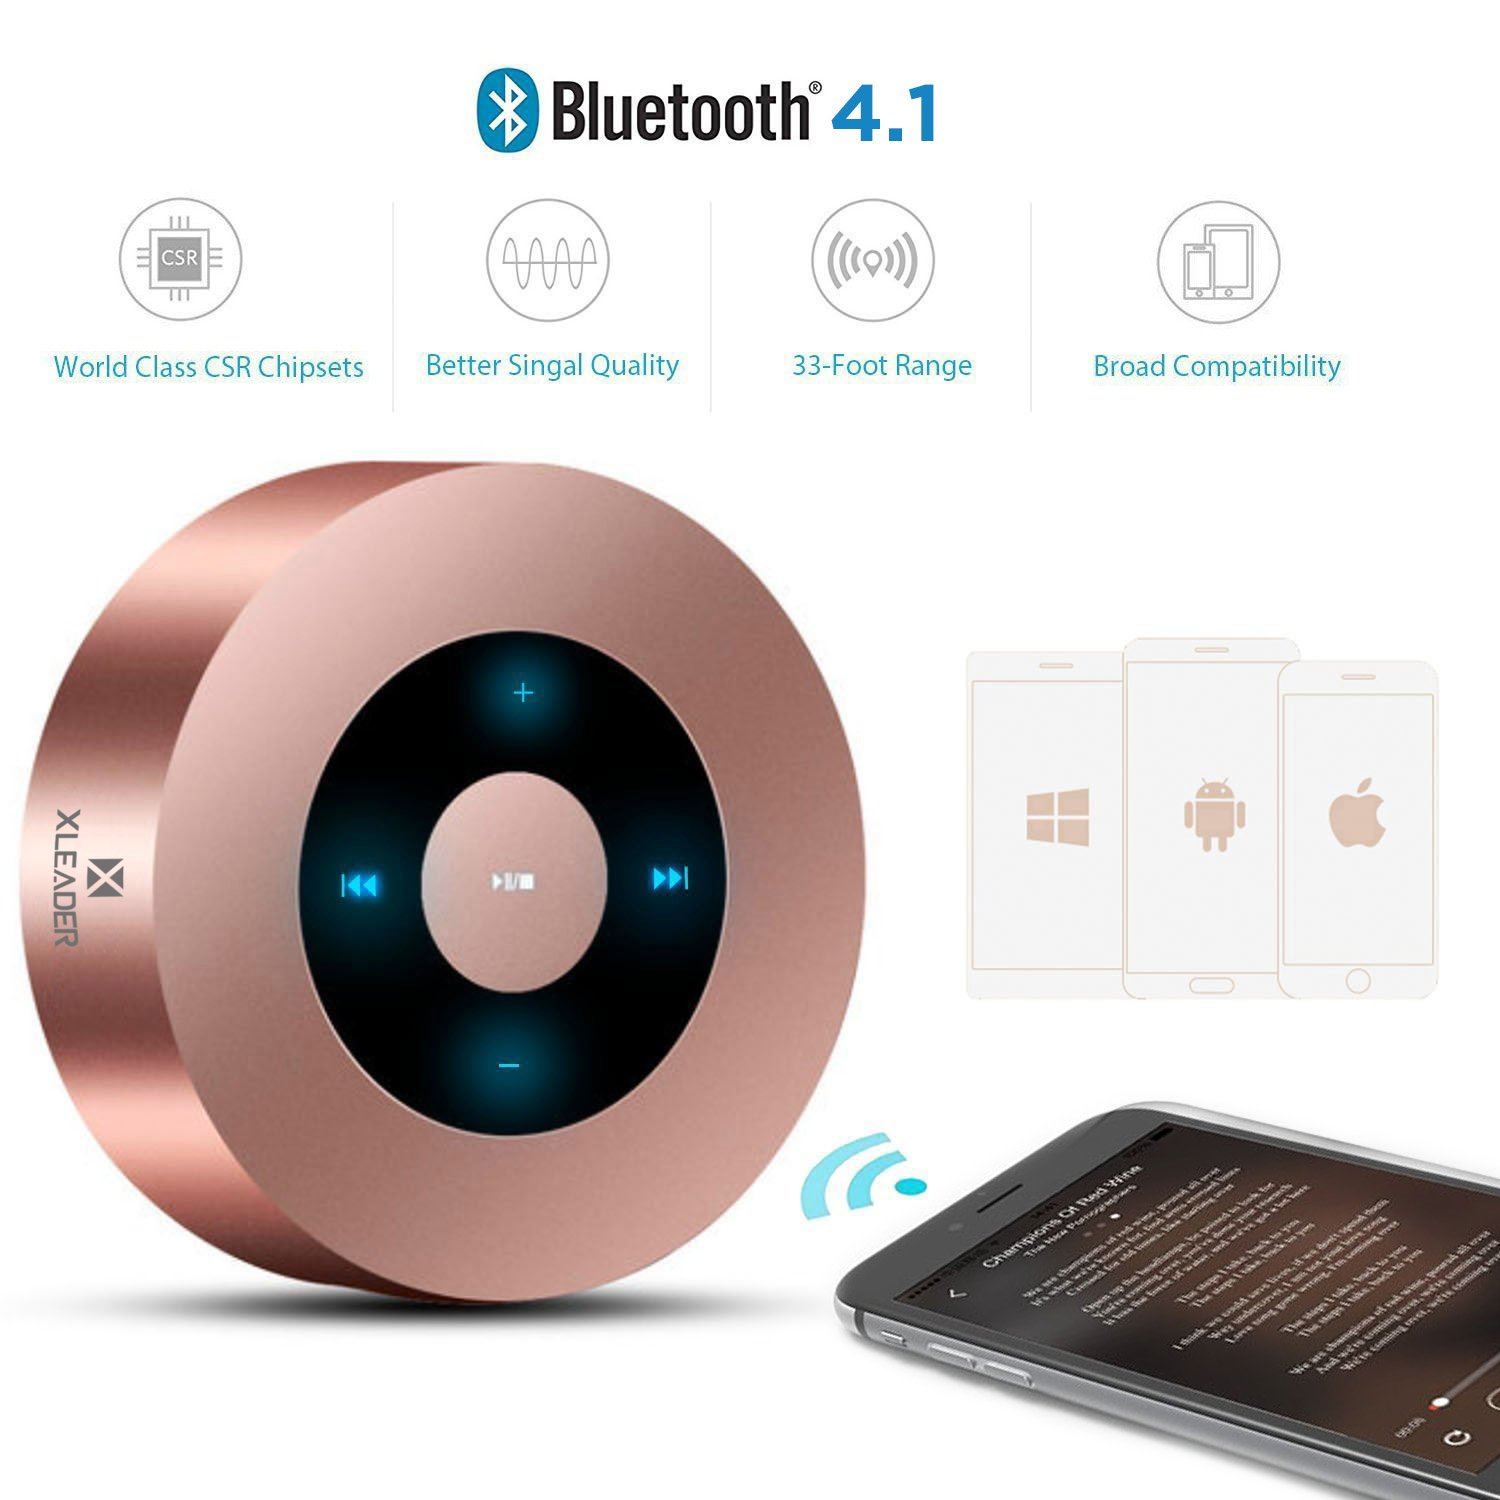 [LED Touch Design] Bluetooth Speaker, XLeader Portable Speaker with HD Sound / 12-Hour Playtime / Bluetooth 4.1 / Micro SD Support, for iphone/ipad/Tablet/Laptop/Echo dot (Rose gold) by XLeader (Image #3)